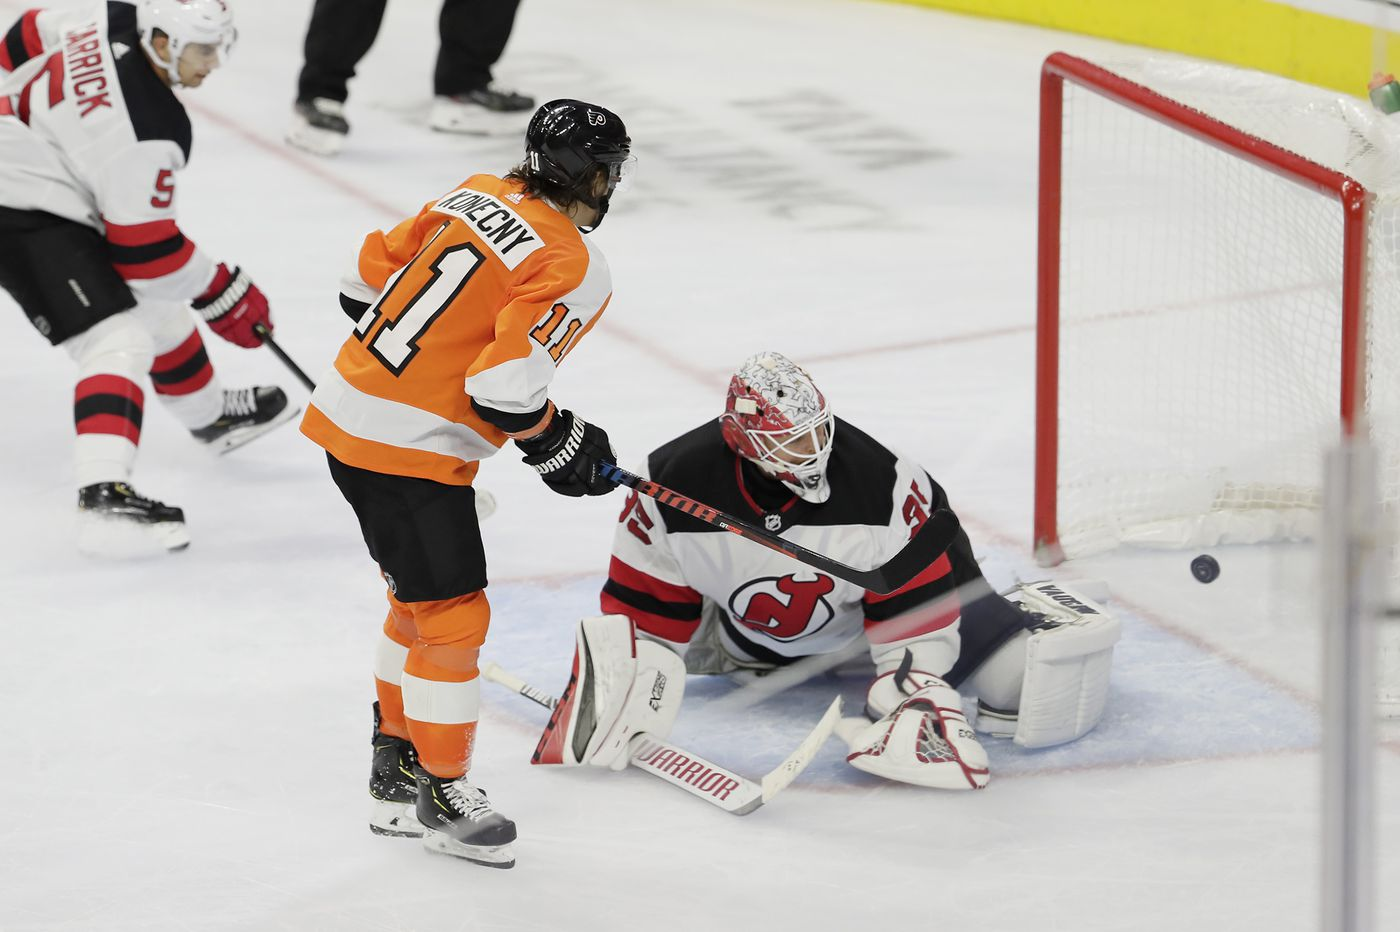 For Flyers, another up-and-down start to a season | Sam Carchidi